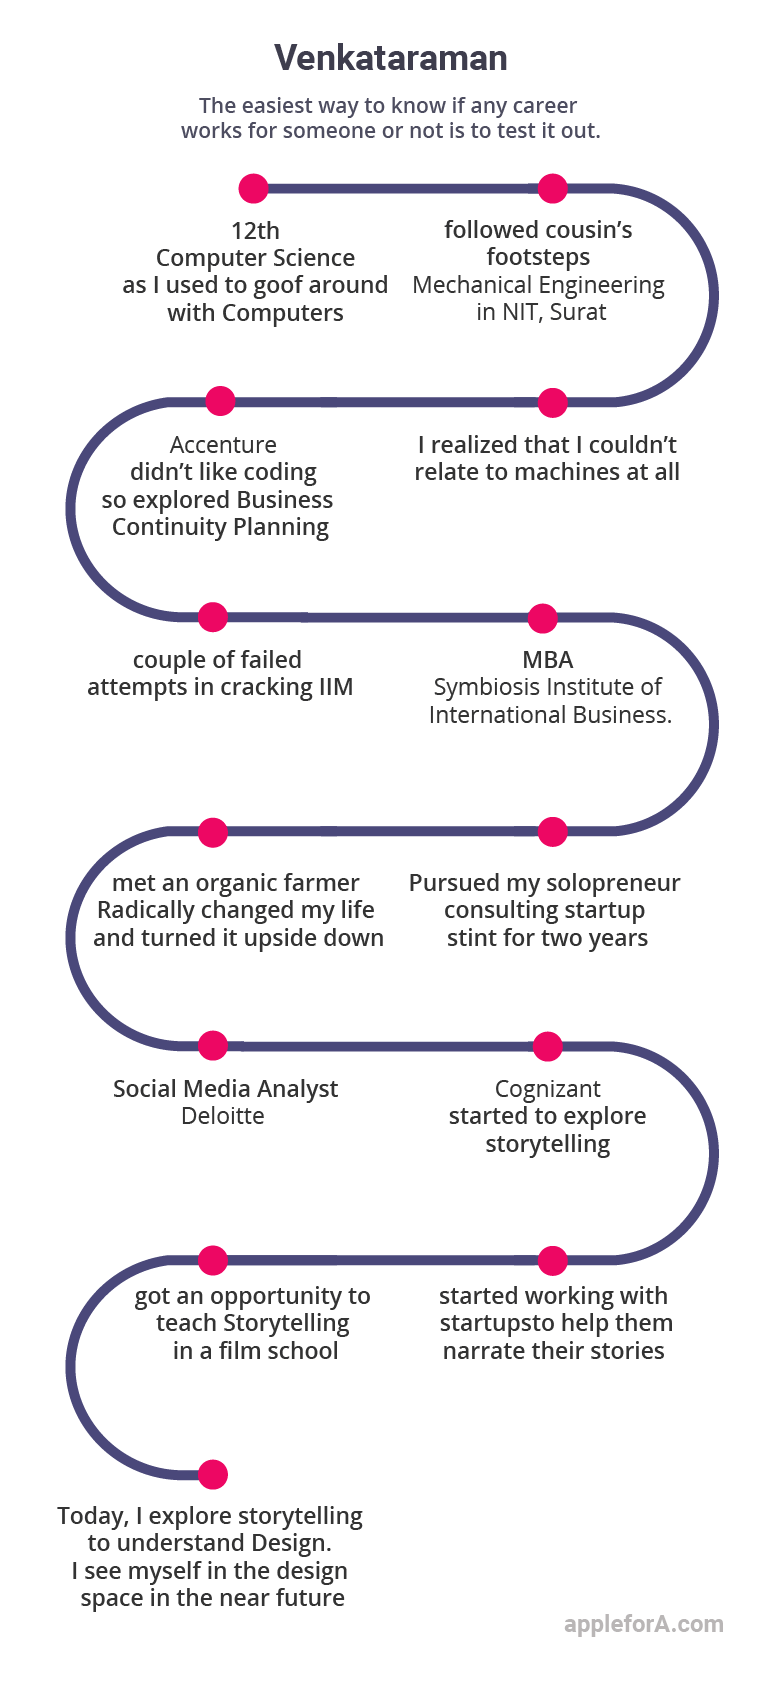 infographic Digital Transformation Consultant storyteller Venkataraman career journey